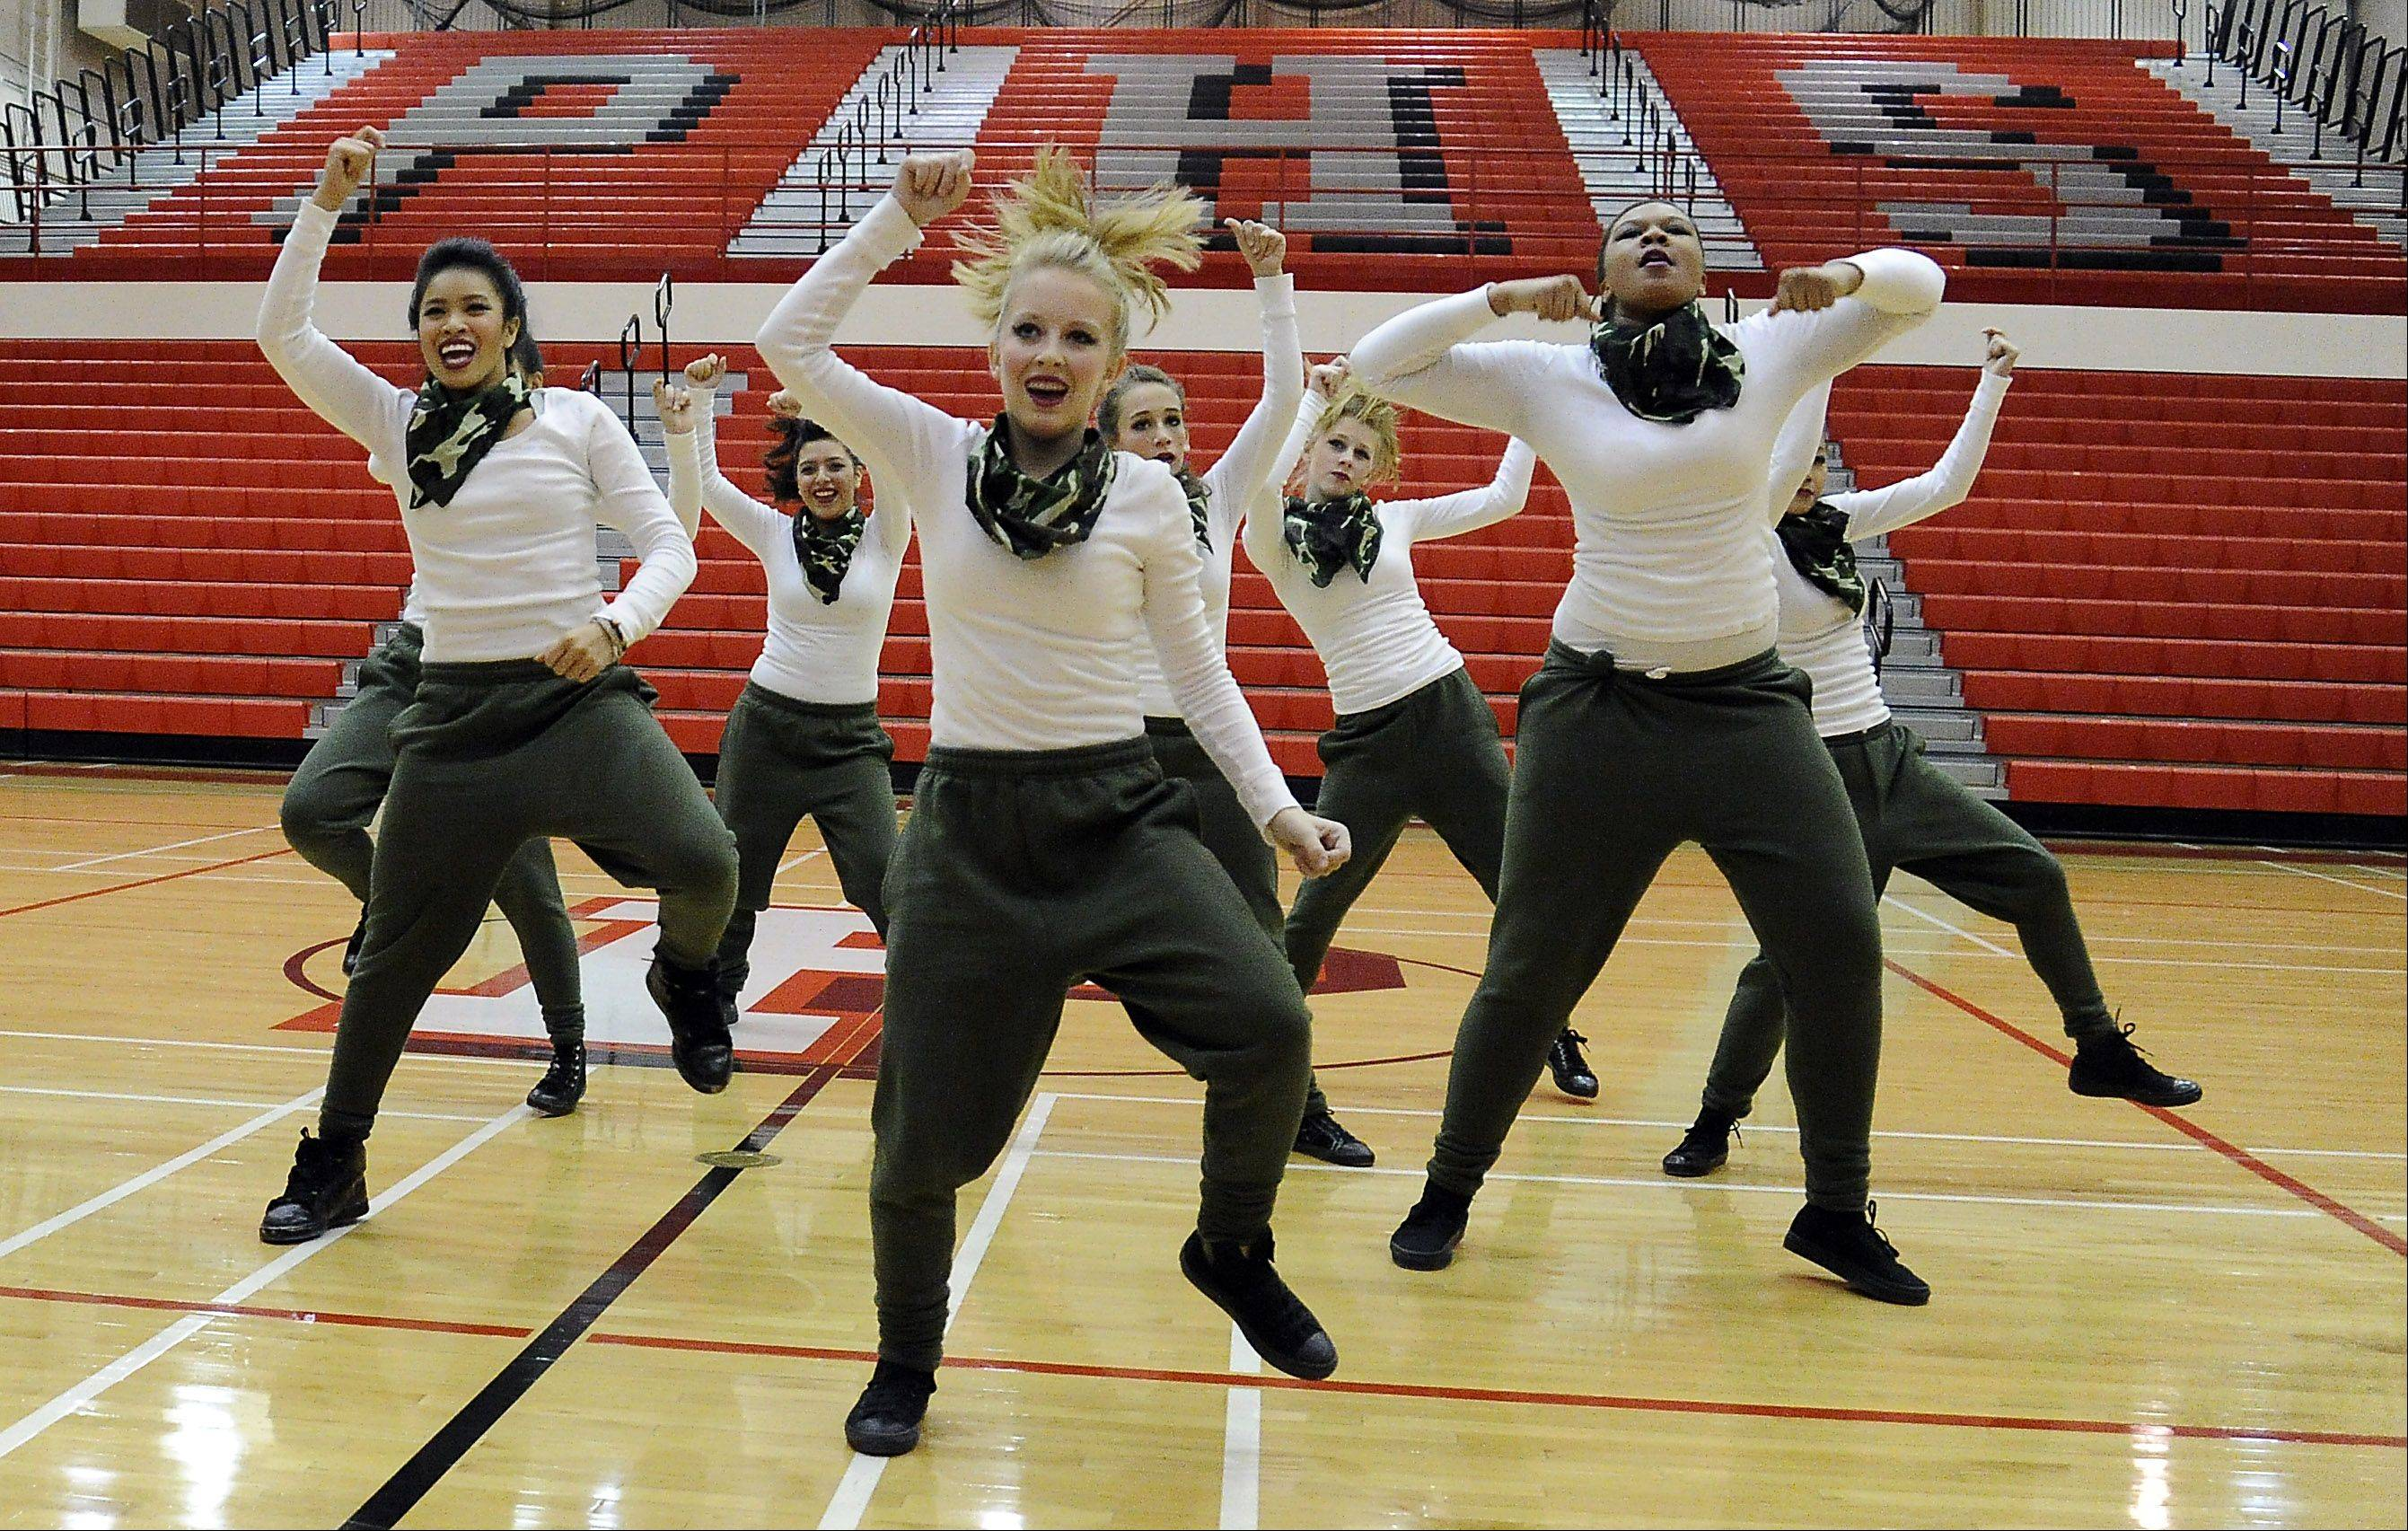 Dancing in the (2A) division are members of the Hampshire High School dance squad in the 1st annual Sectional Competition at Palatine High School on Saturday.